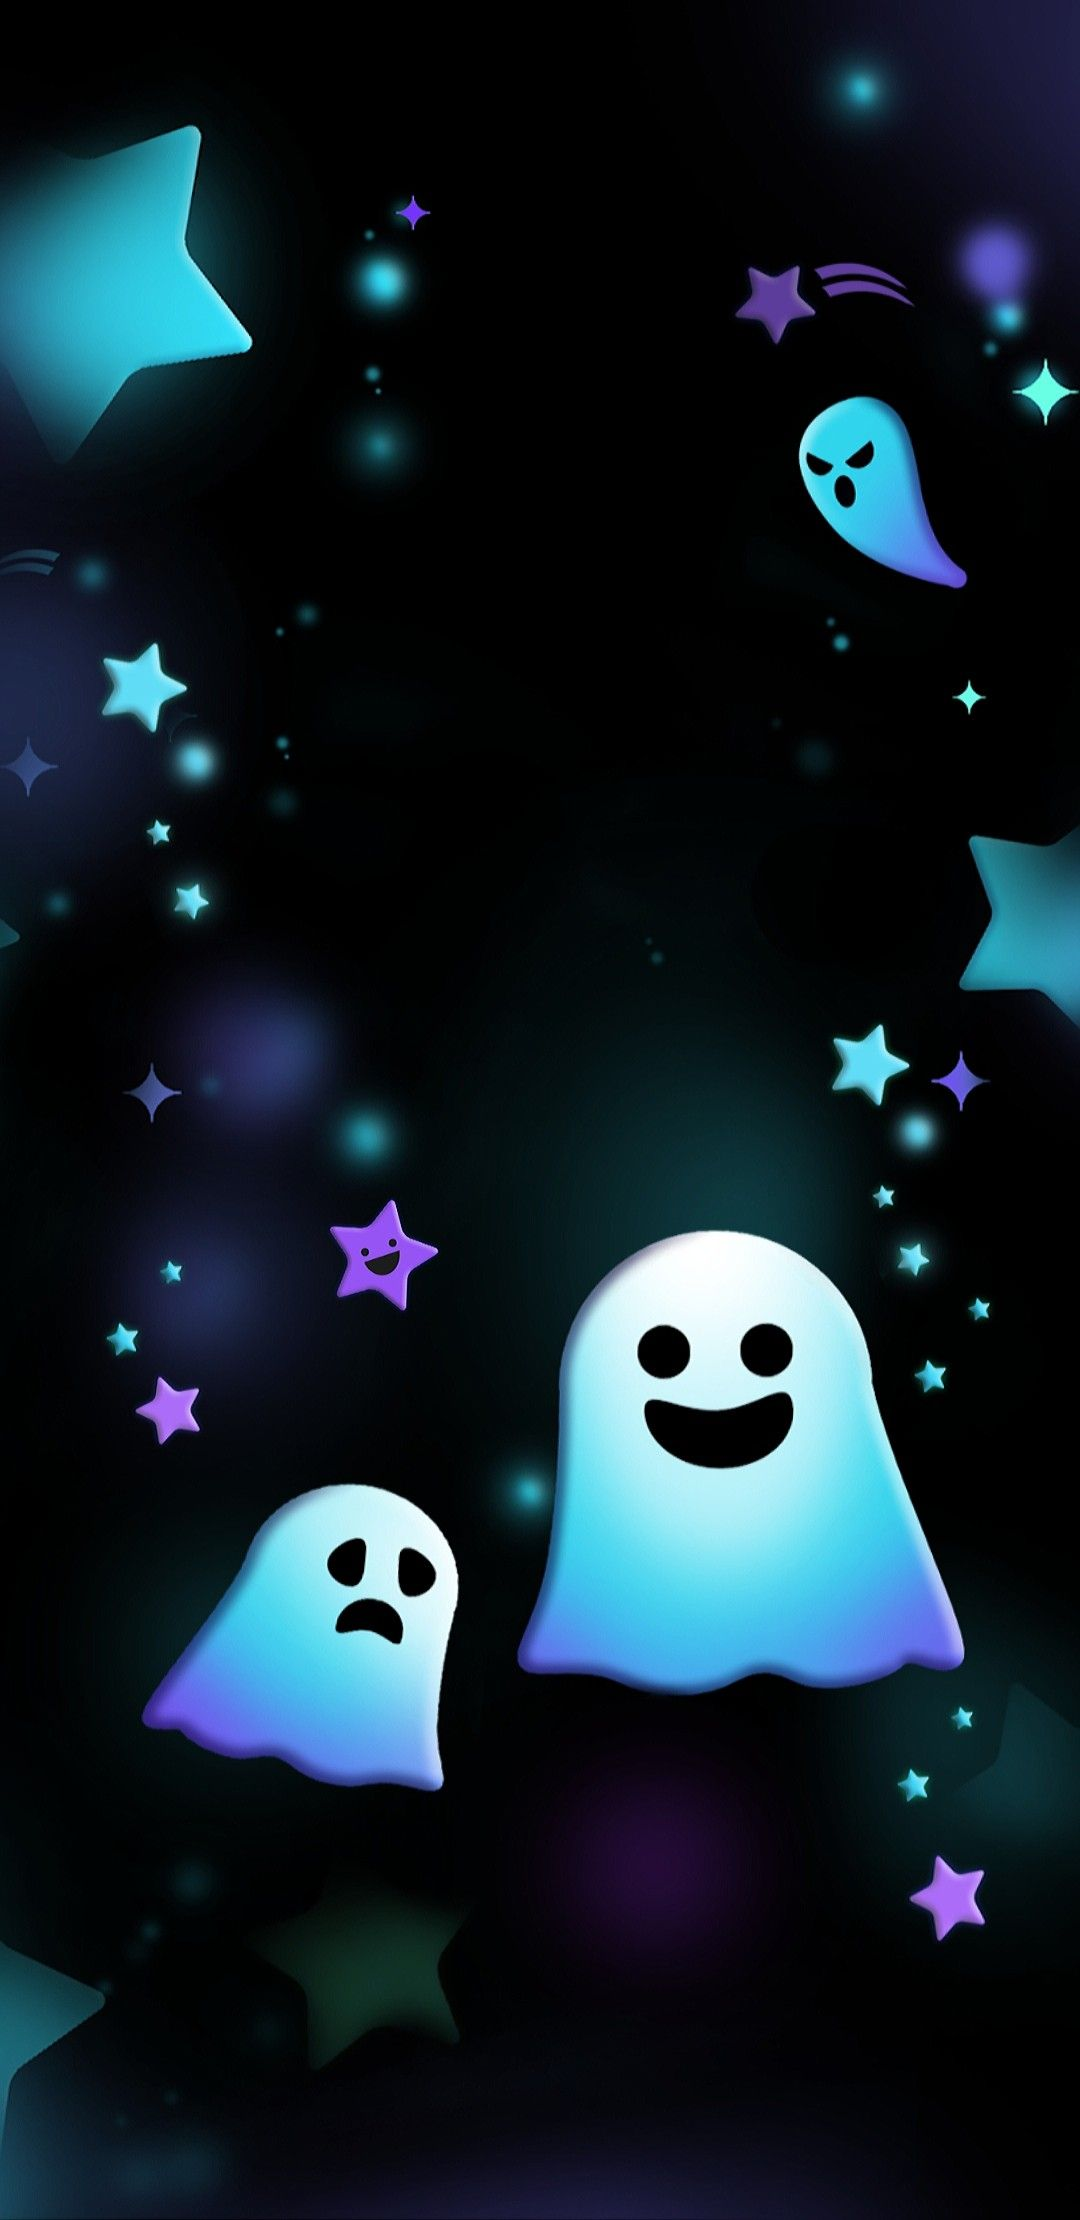 Fantasmacitas Lindas Cute Little Ghosts Diadelasbrujas Halloween Fondos Wallpapers Bac Fondos De Halloween Fondo Halloween Fondo De Pantalla Halloween